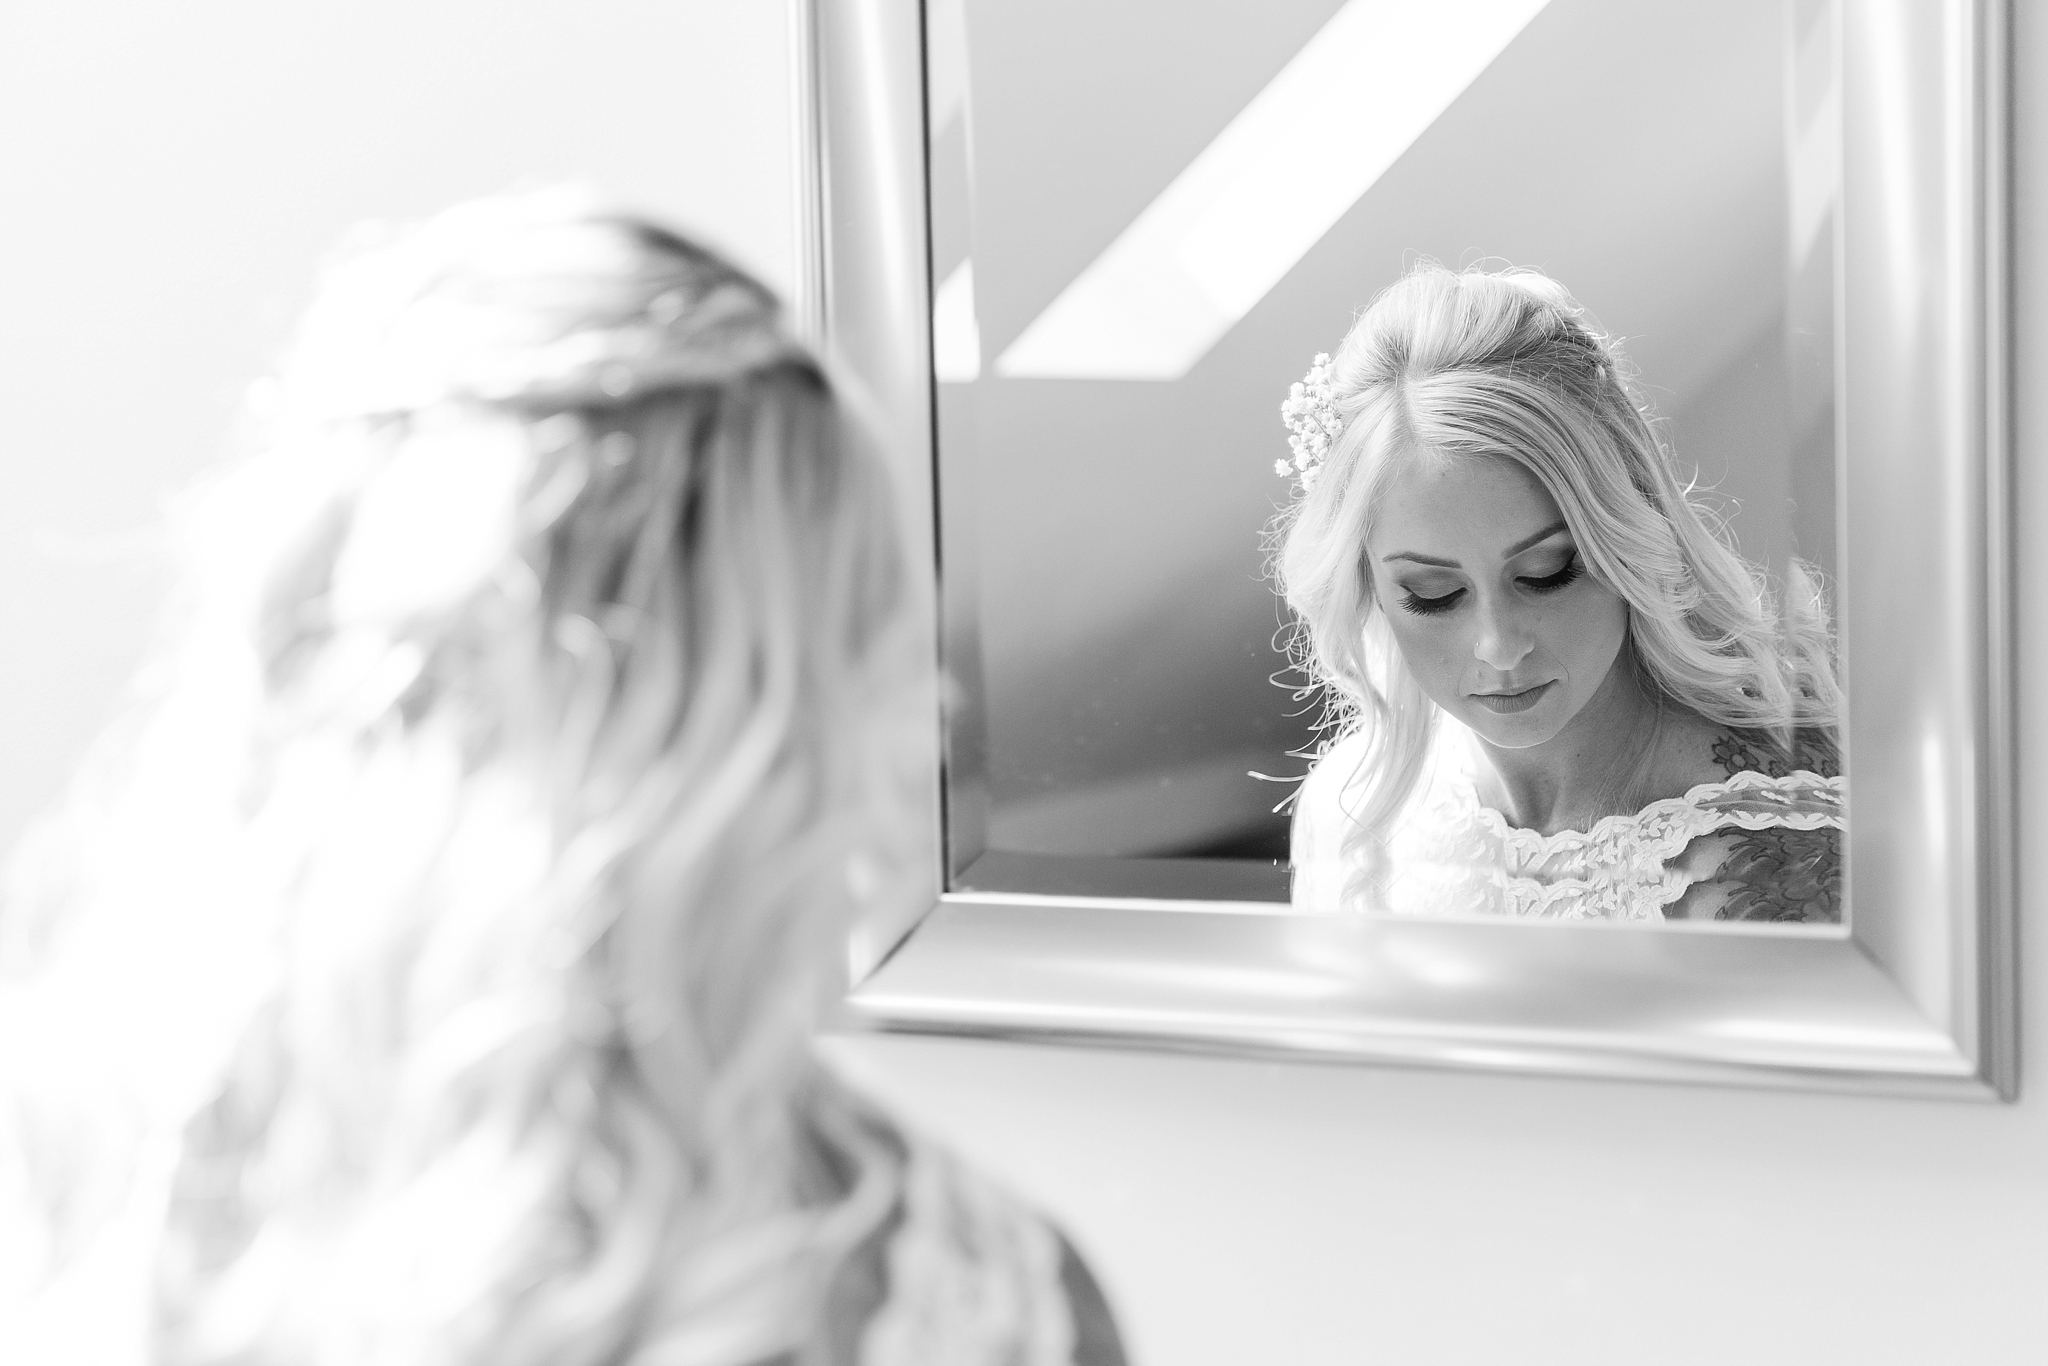 romantic-artful-candid-wedding-photos-in-detroit-lansing-ann-arbor-northern-michigan-and-chicago-by-courtney-carolyn-photography_0005.jpg